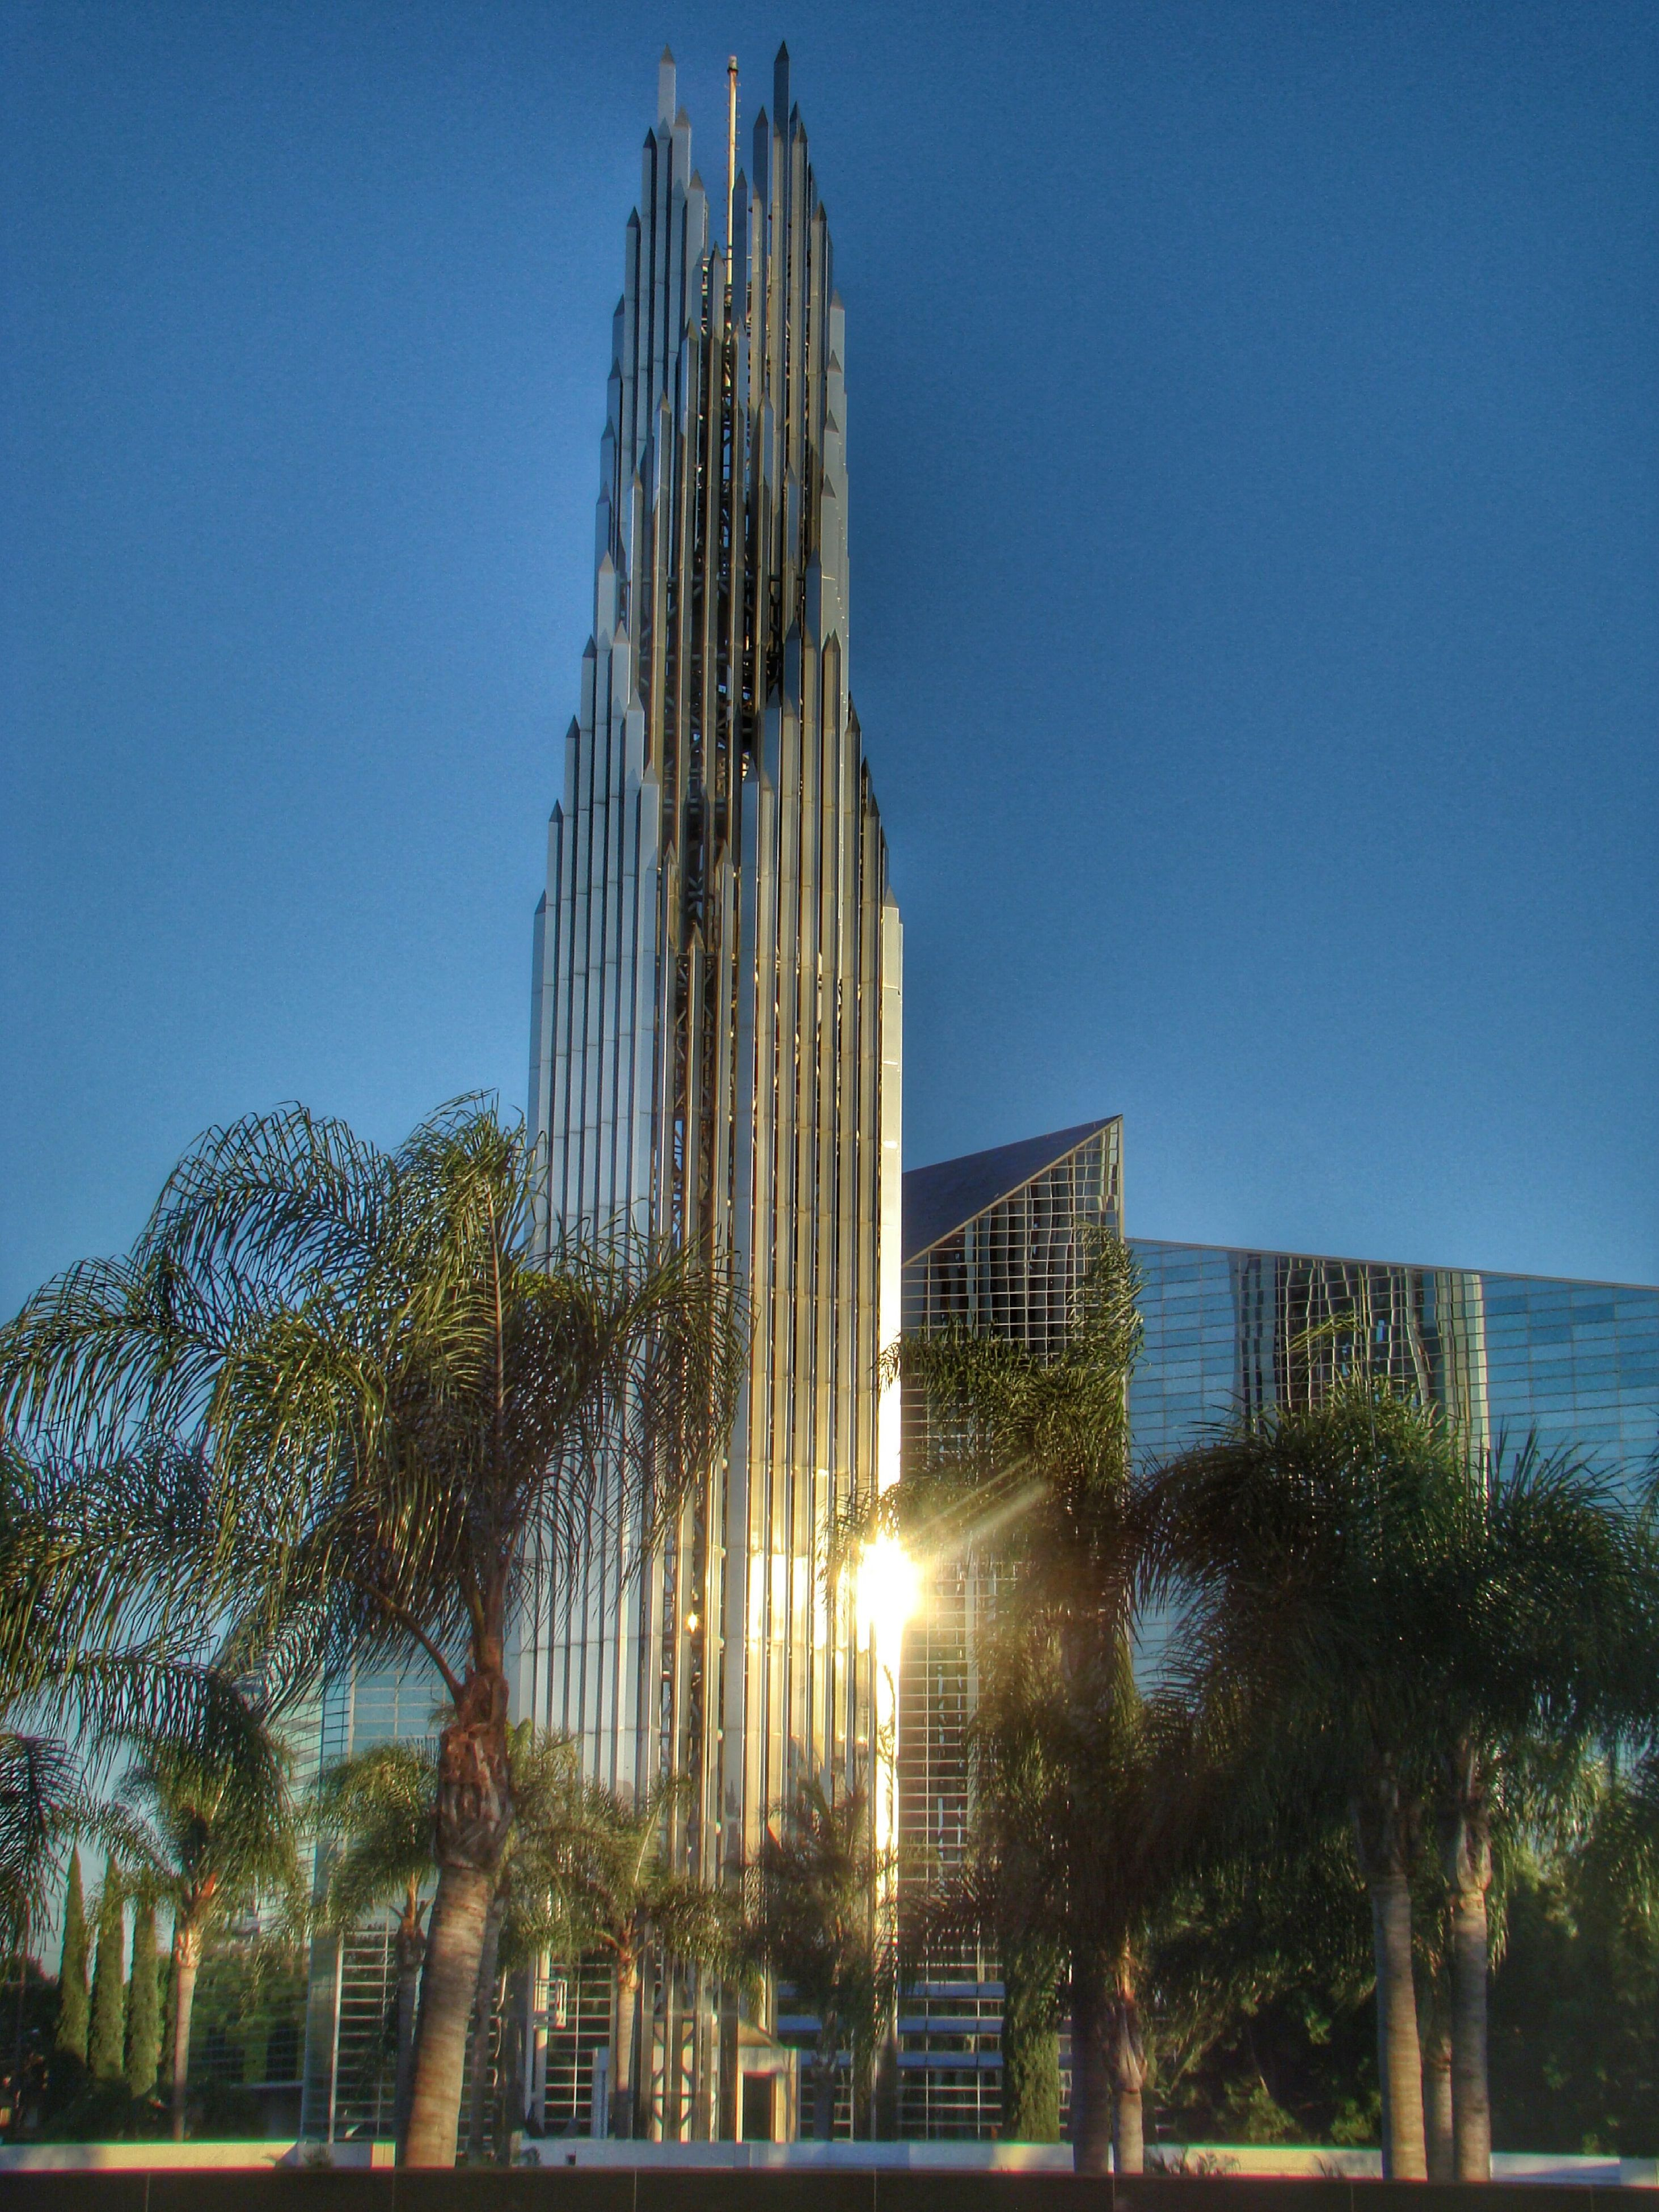 clear sky, built structure, architecture, blue, sunlight, building exterior, water, sun, tree, low angle view, palm tree, tall - high, sea, city, sunbeam, copy space, modern, lens flare, tower, reflection